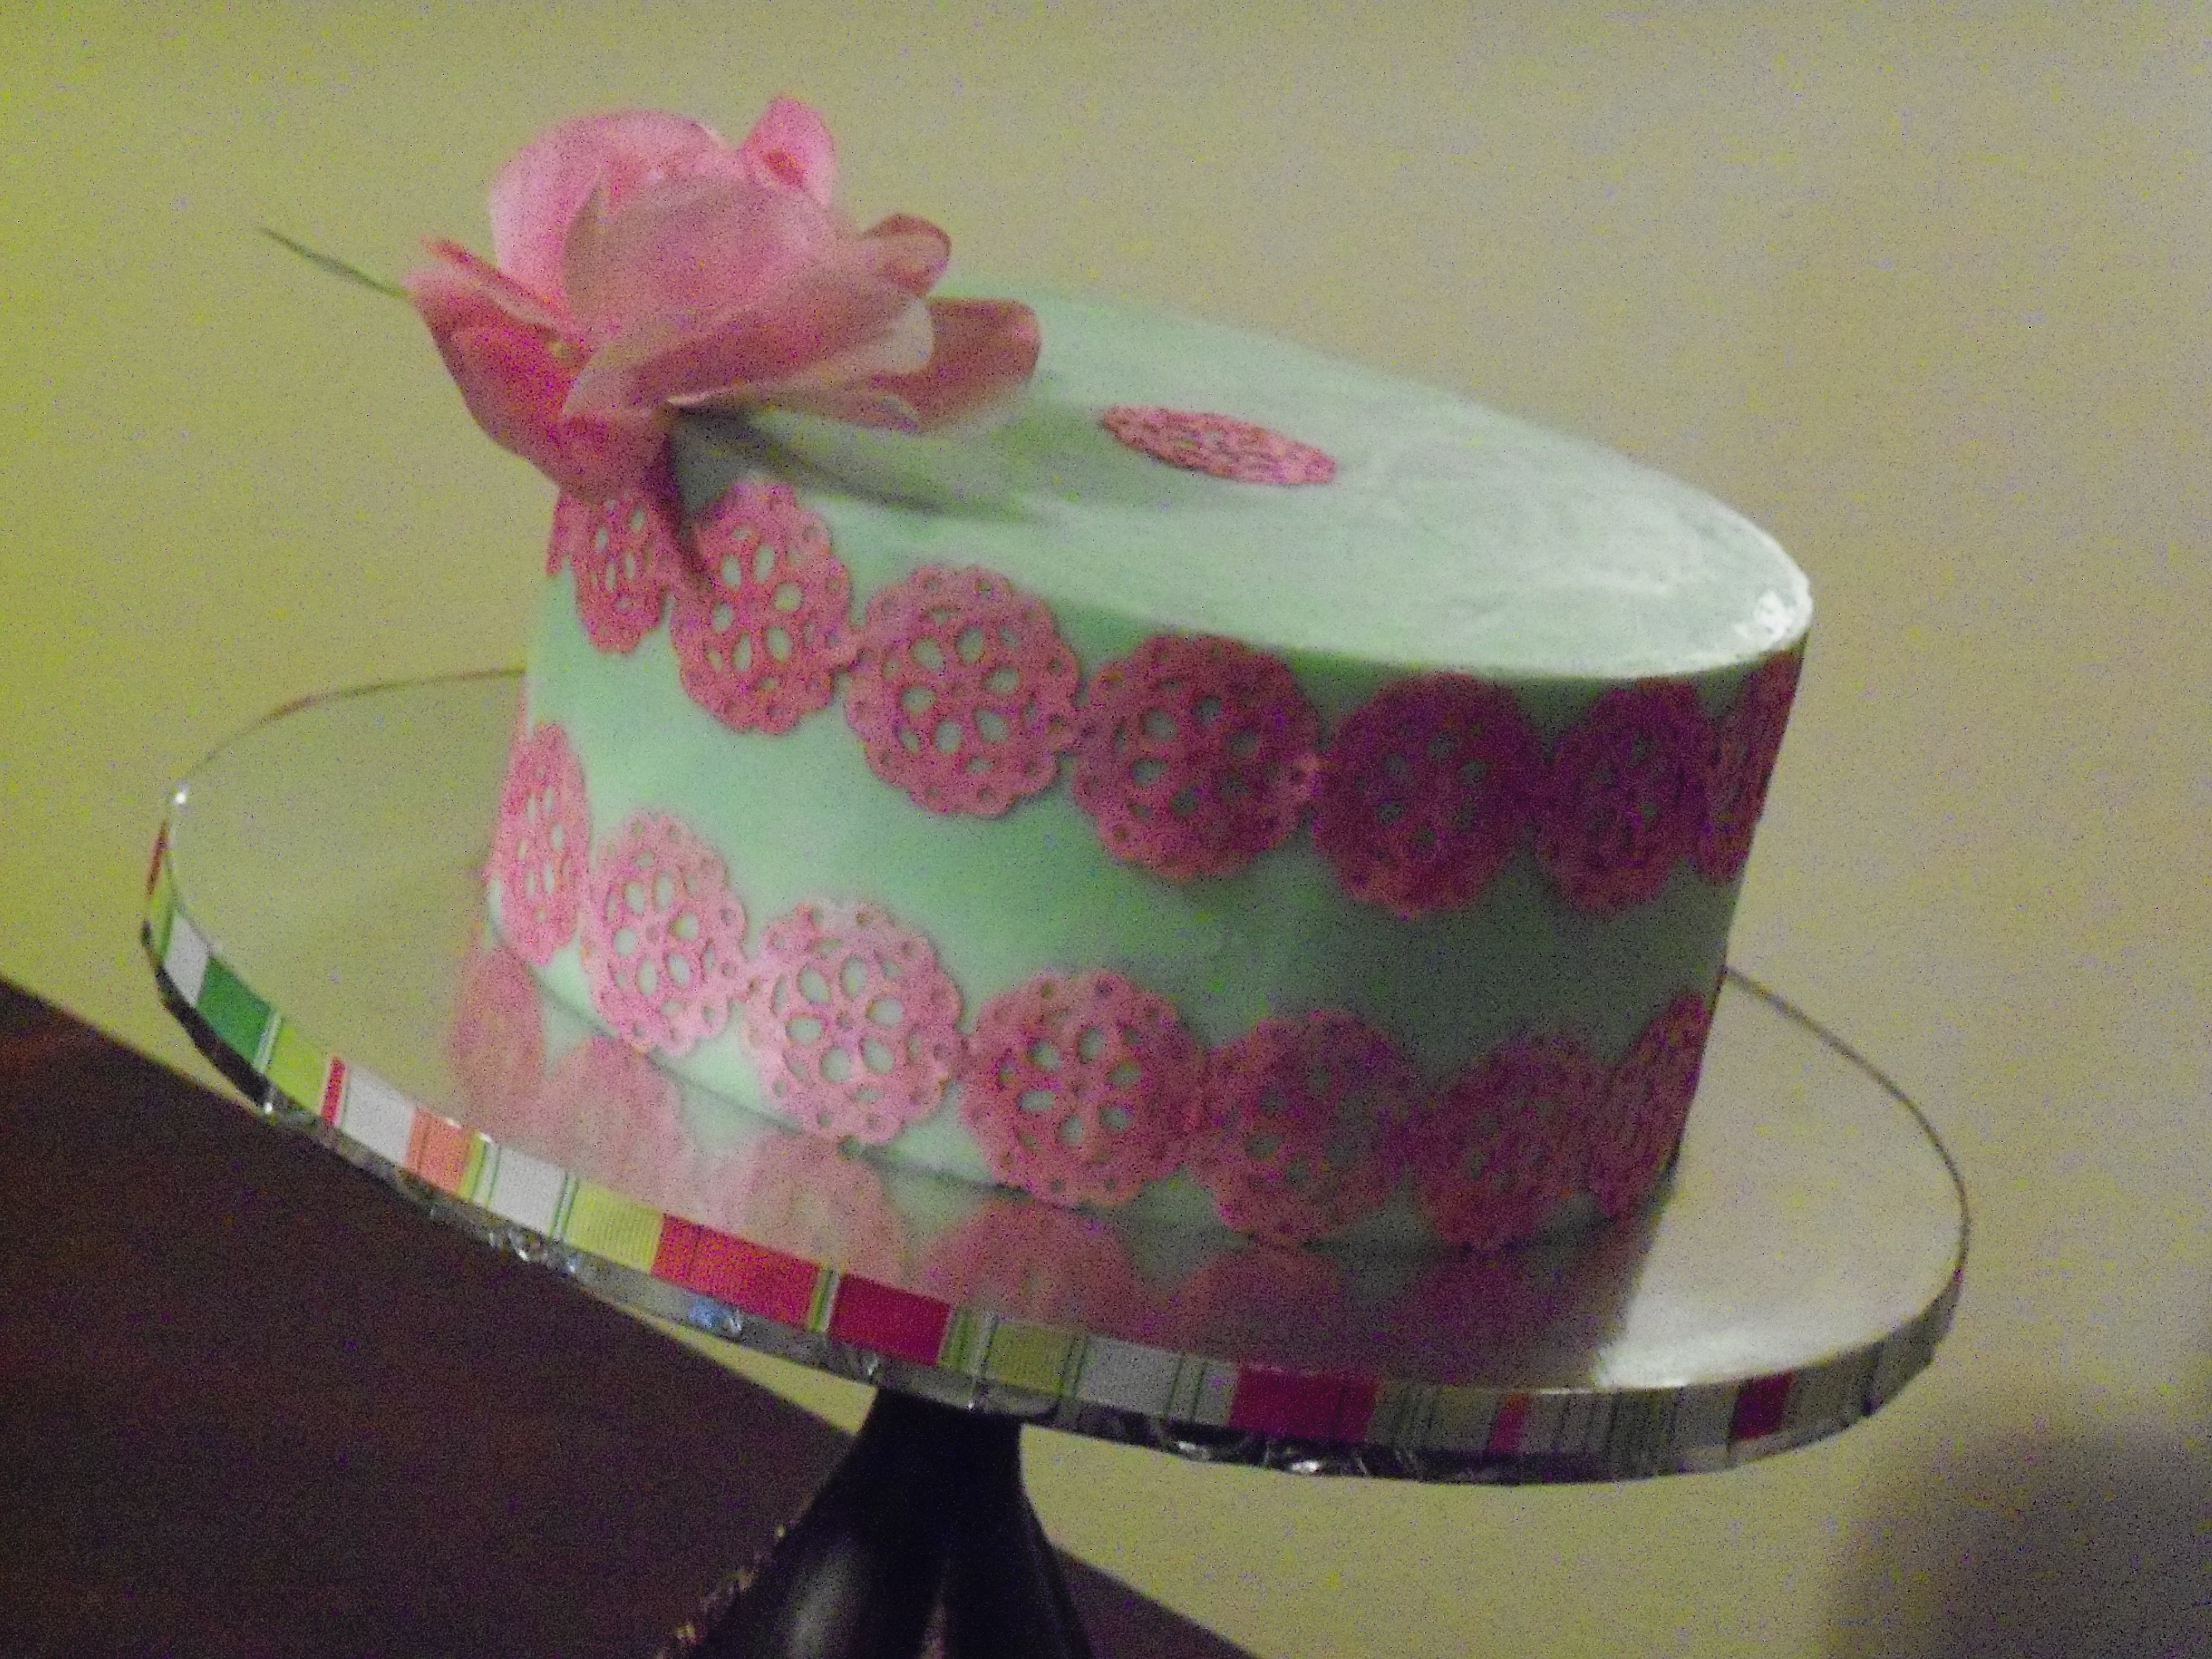 Wafer Paper Decorated Cake  I used wafer paper that I colored with petal dust. I also used a craft punch. The rose is made of wafer paper. First time trying a rose but...